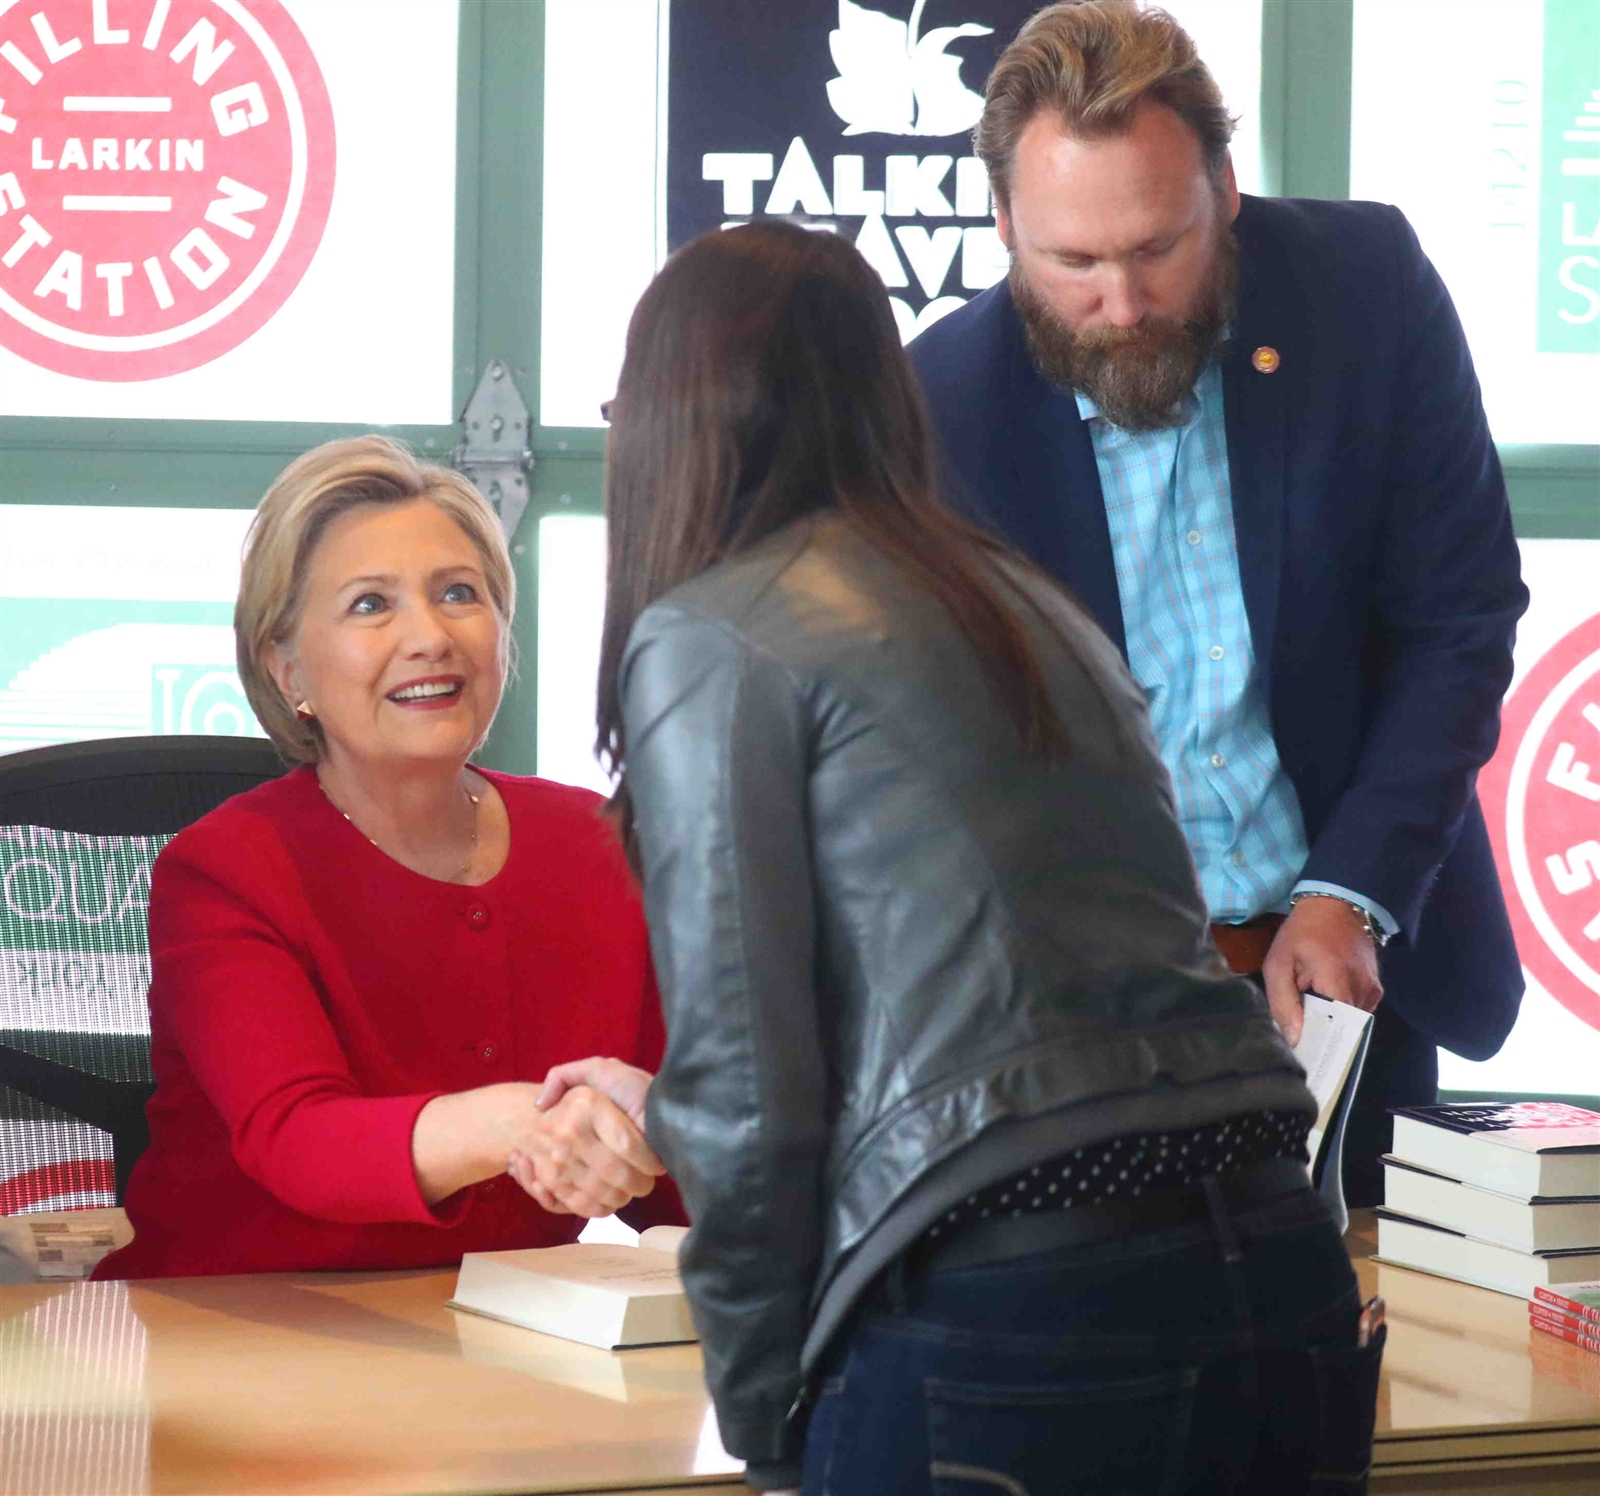 Hillary Clinton greets a woman.